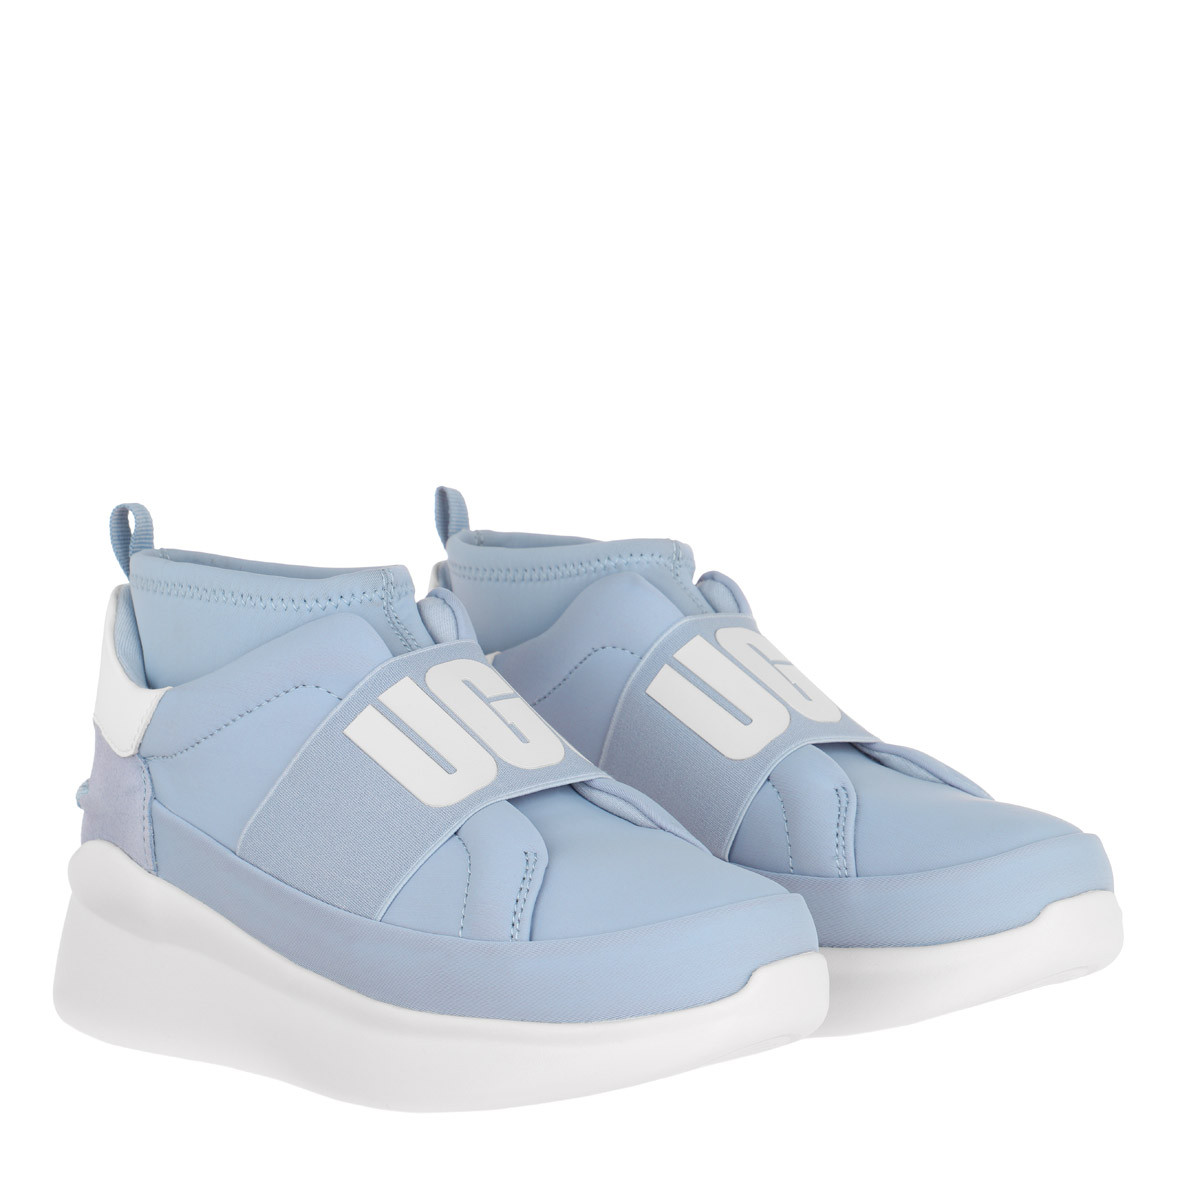 UGG Sneakers - W Neutra Sneaker Fresh Air - in blau - für Damen